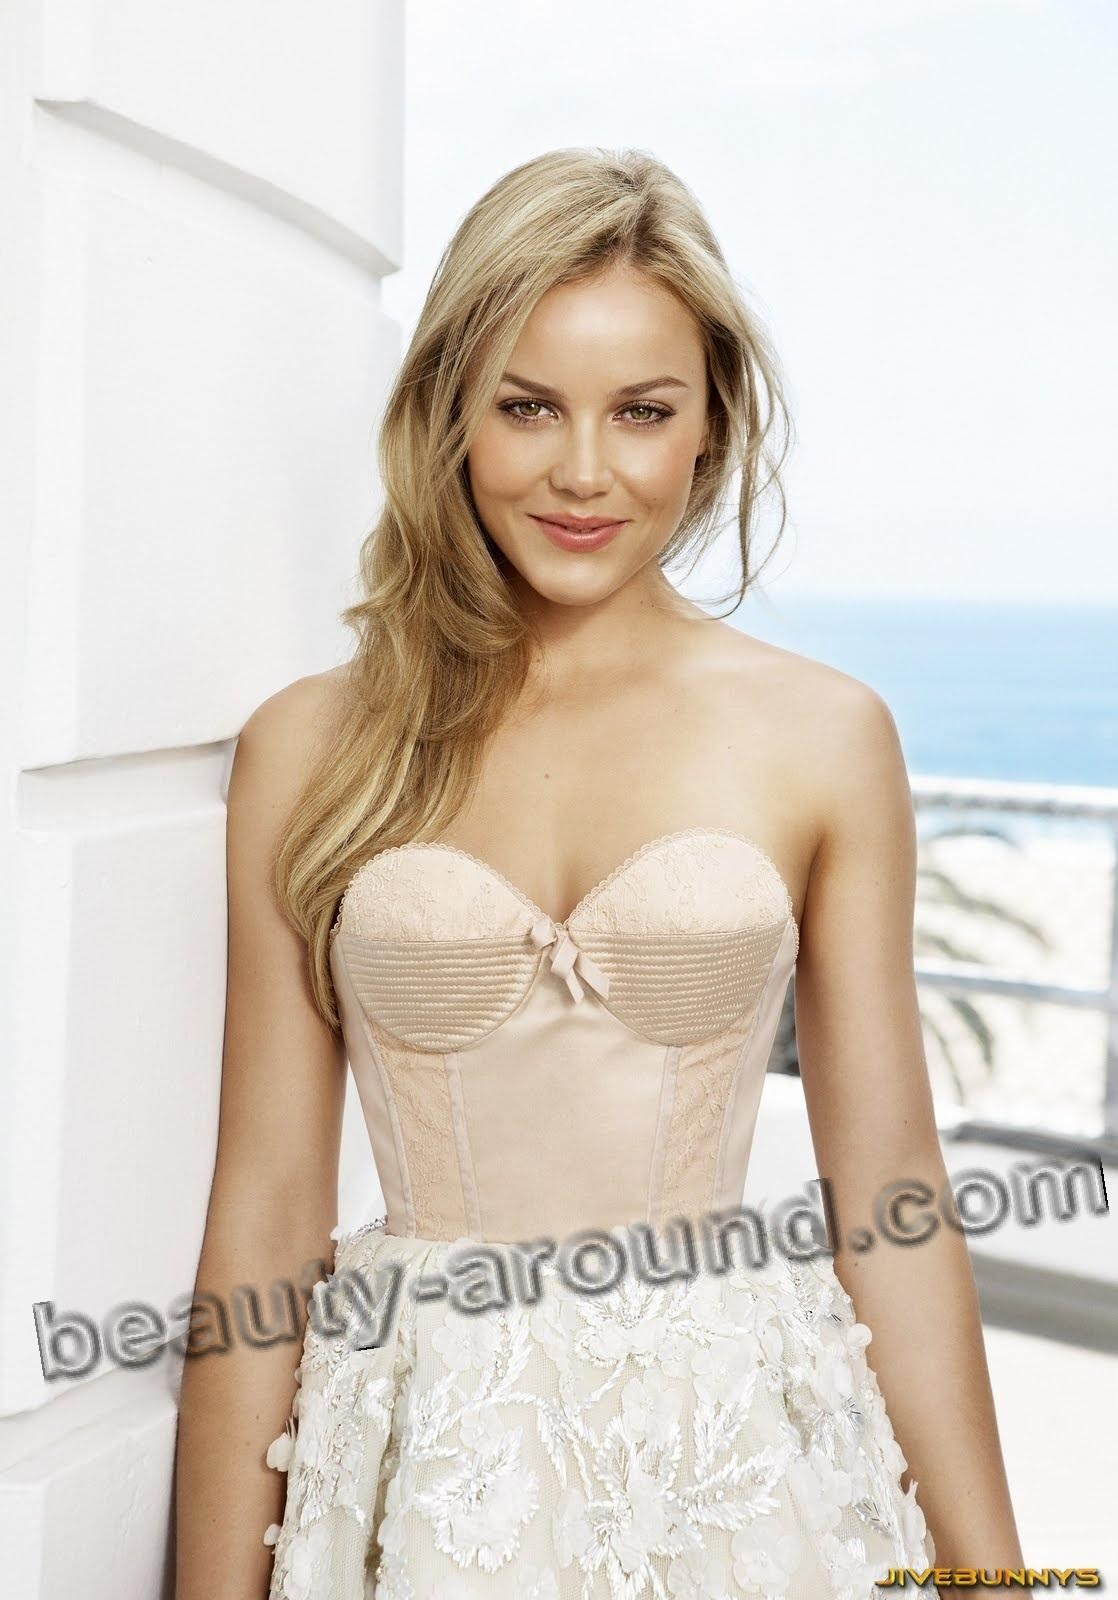 beautiful Australian women photos, Abbie Cornish Australian actress photo